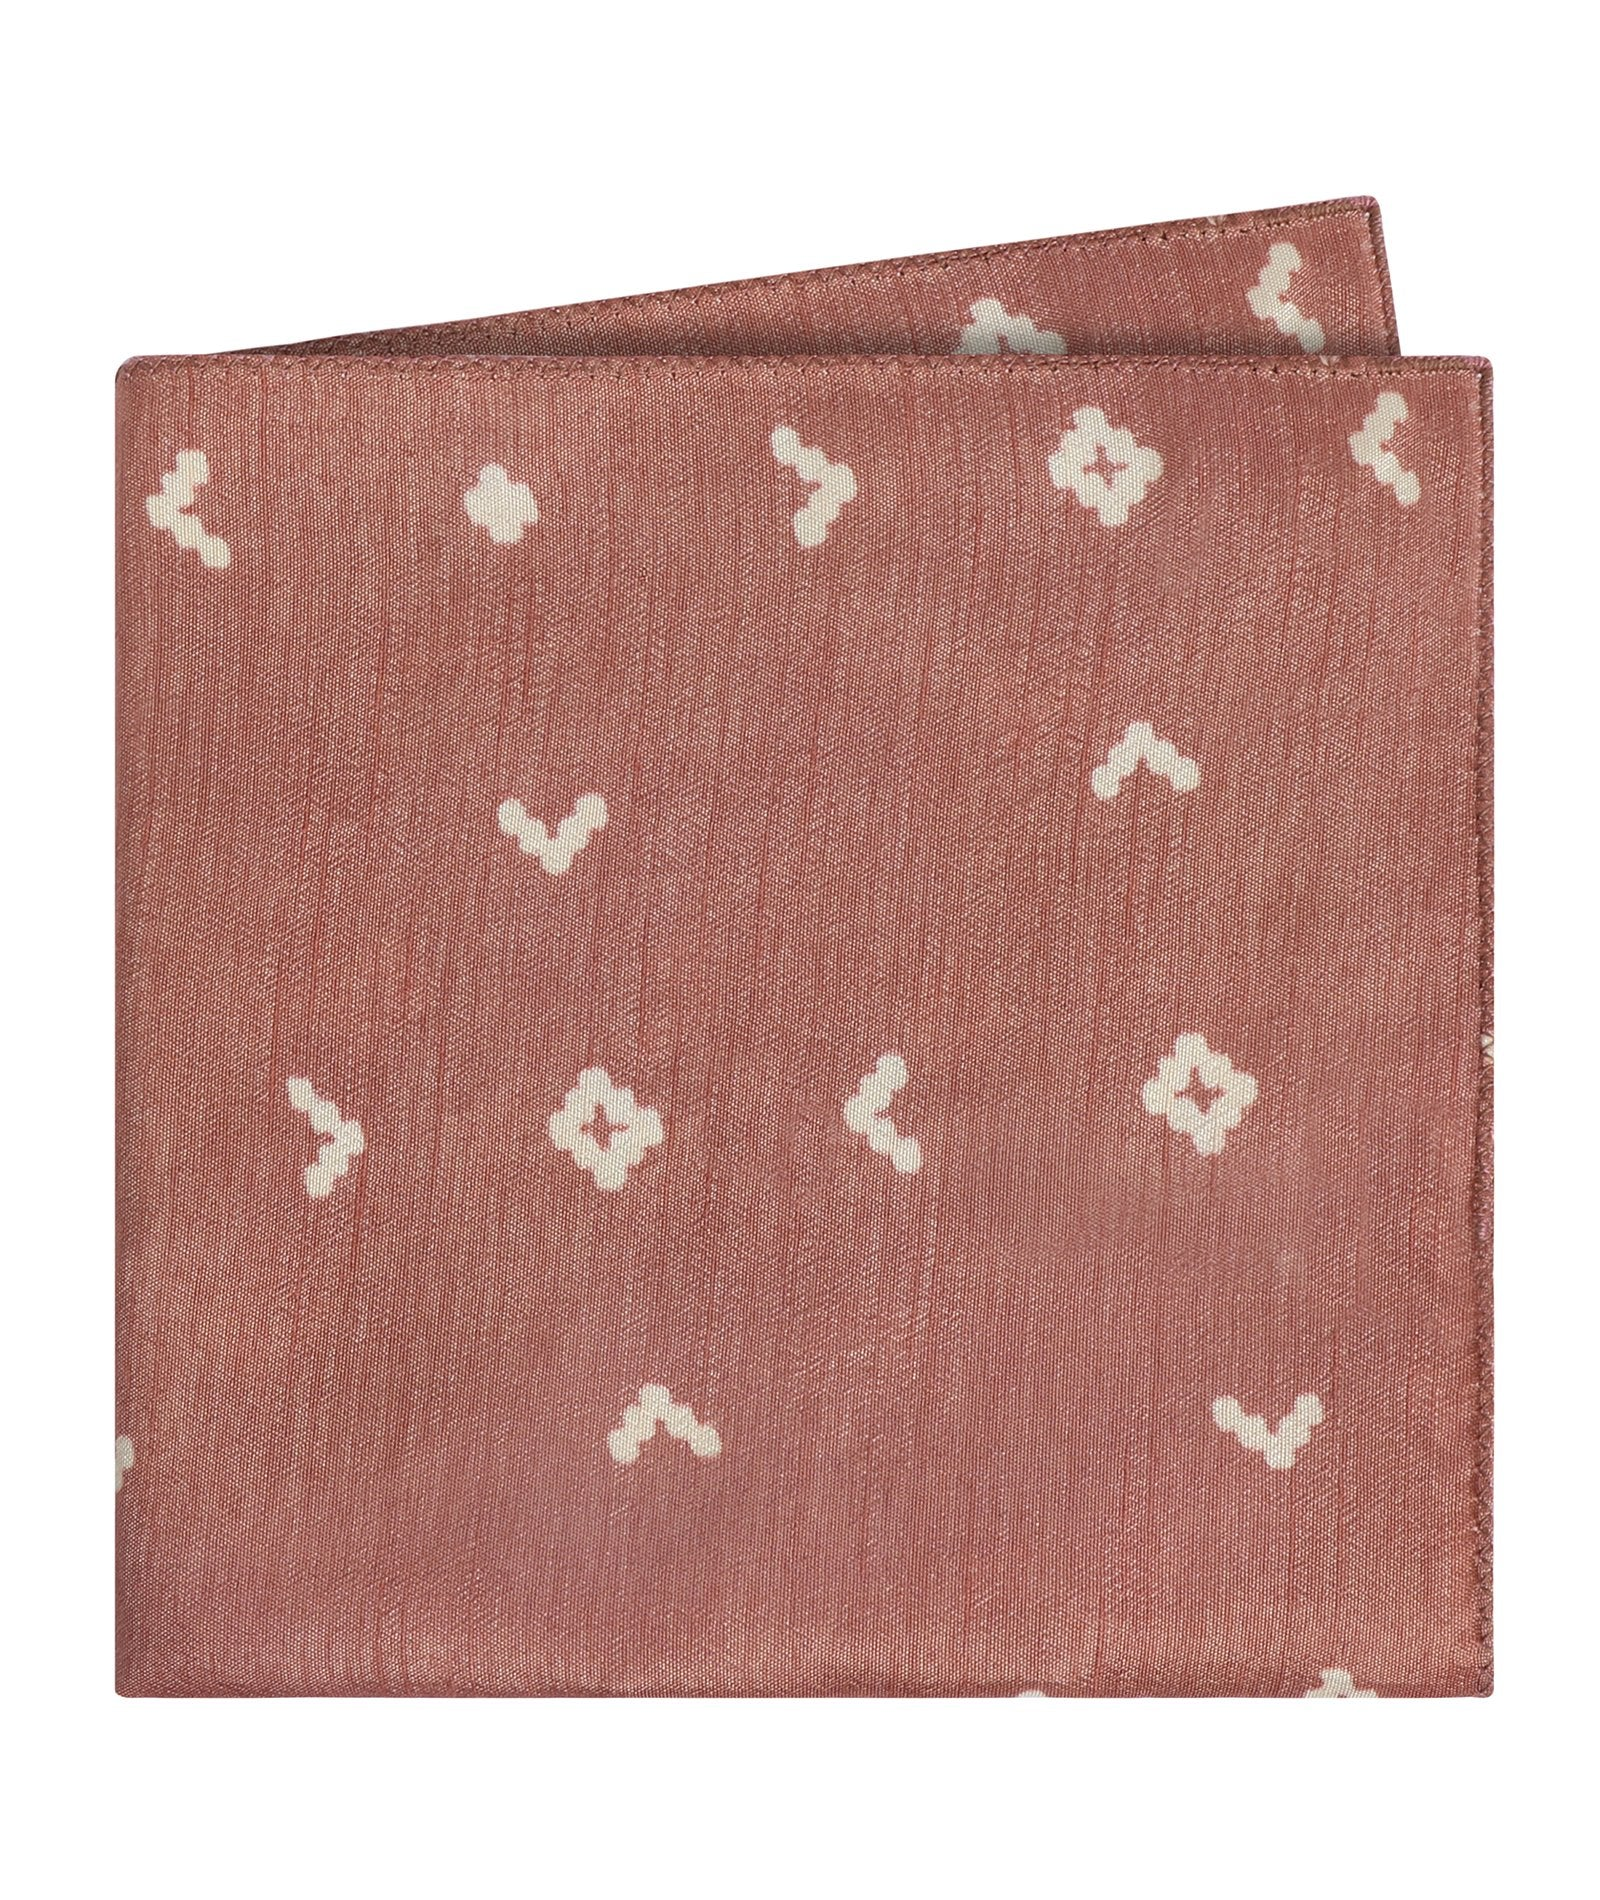 Copper Codes Pocket Square